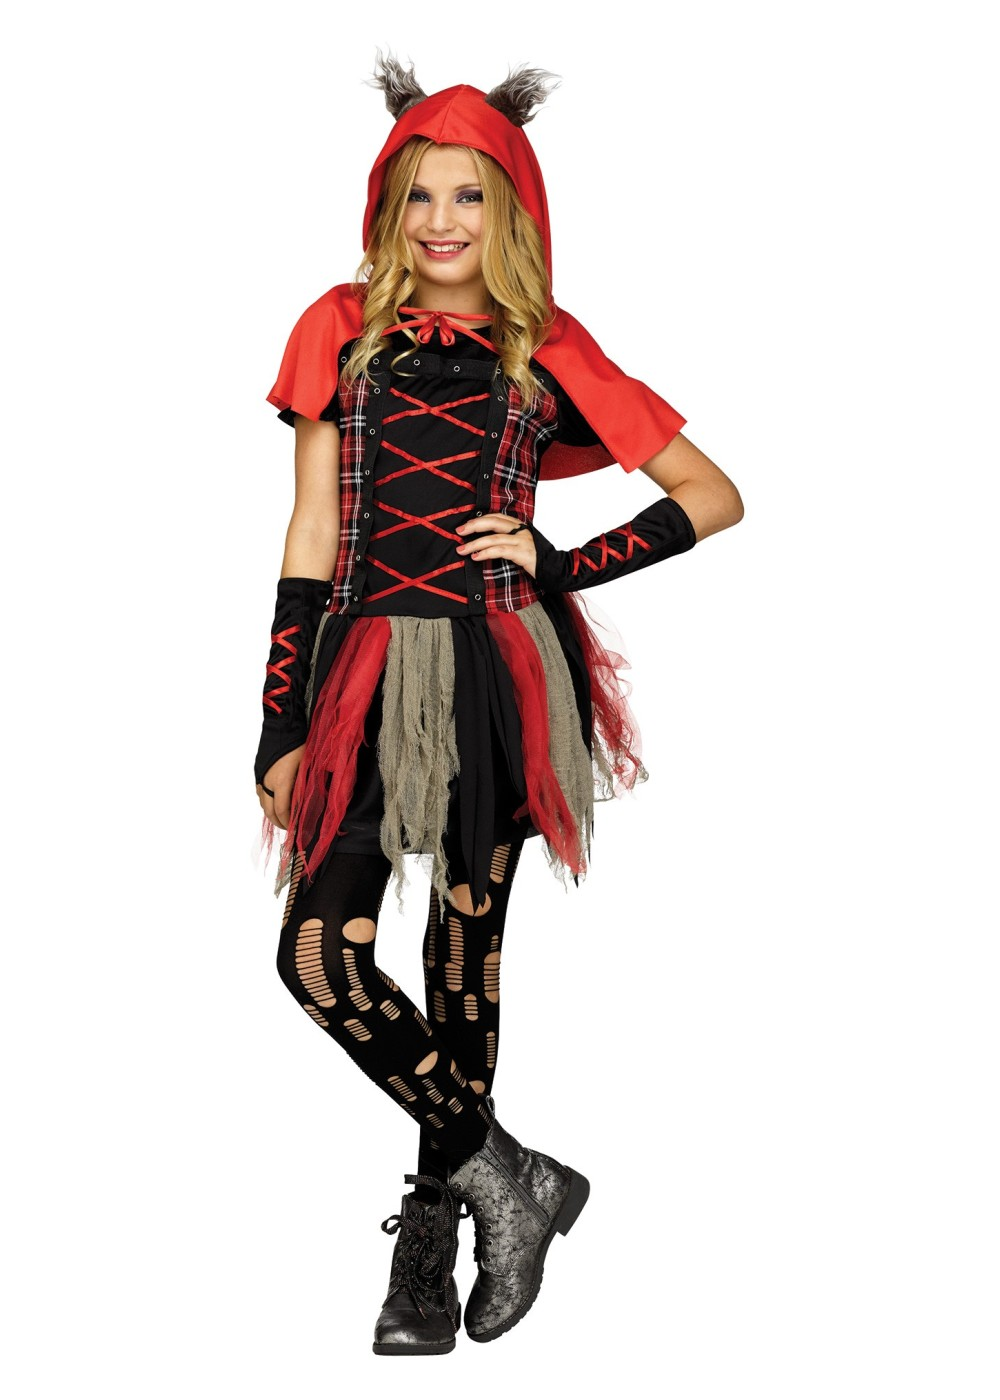 Red Riding Hood Halloween Costumes